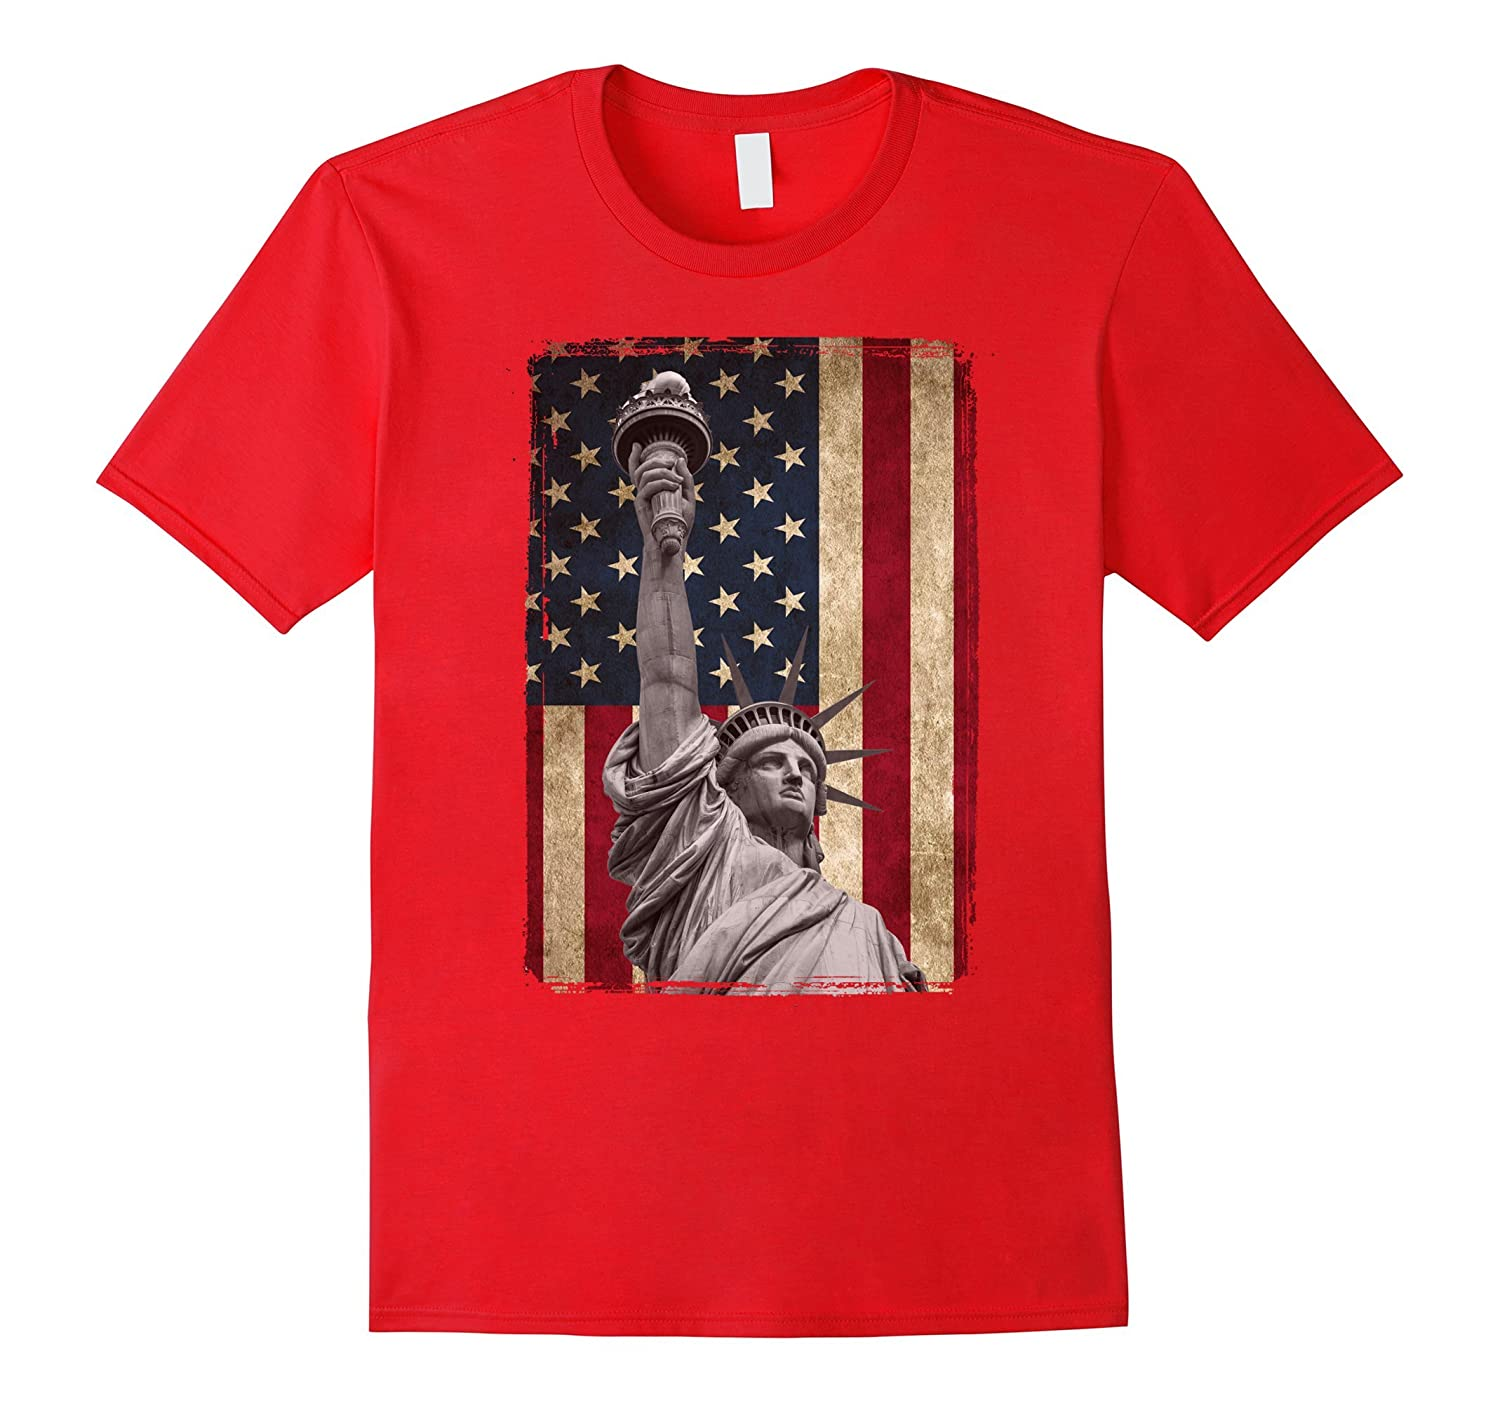 USA American Flag and Statue of Liberty Tee Shirt-Vaci